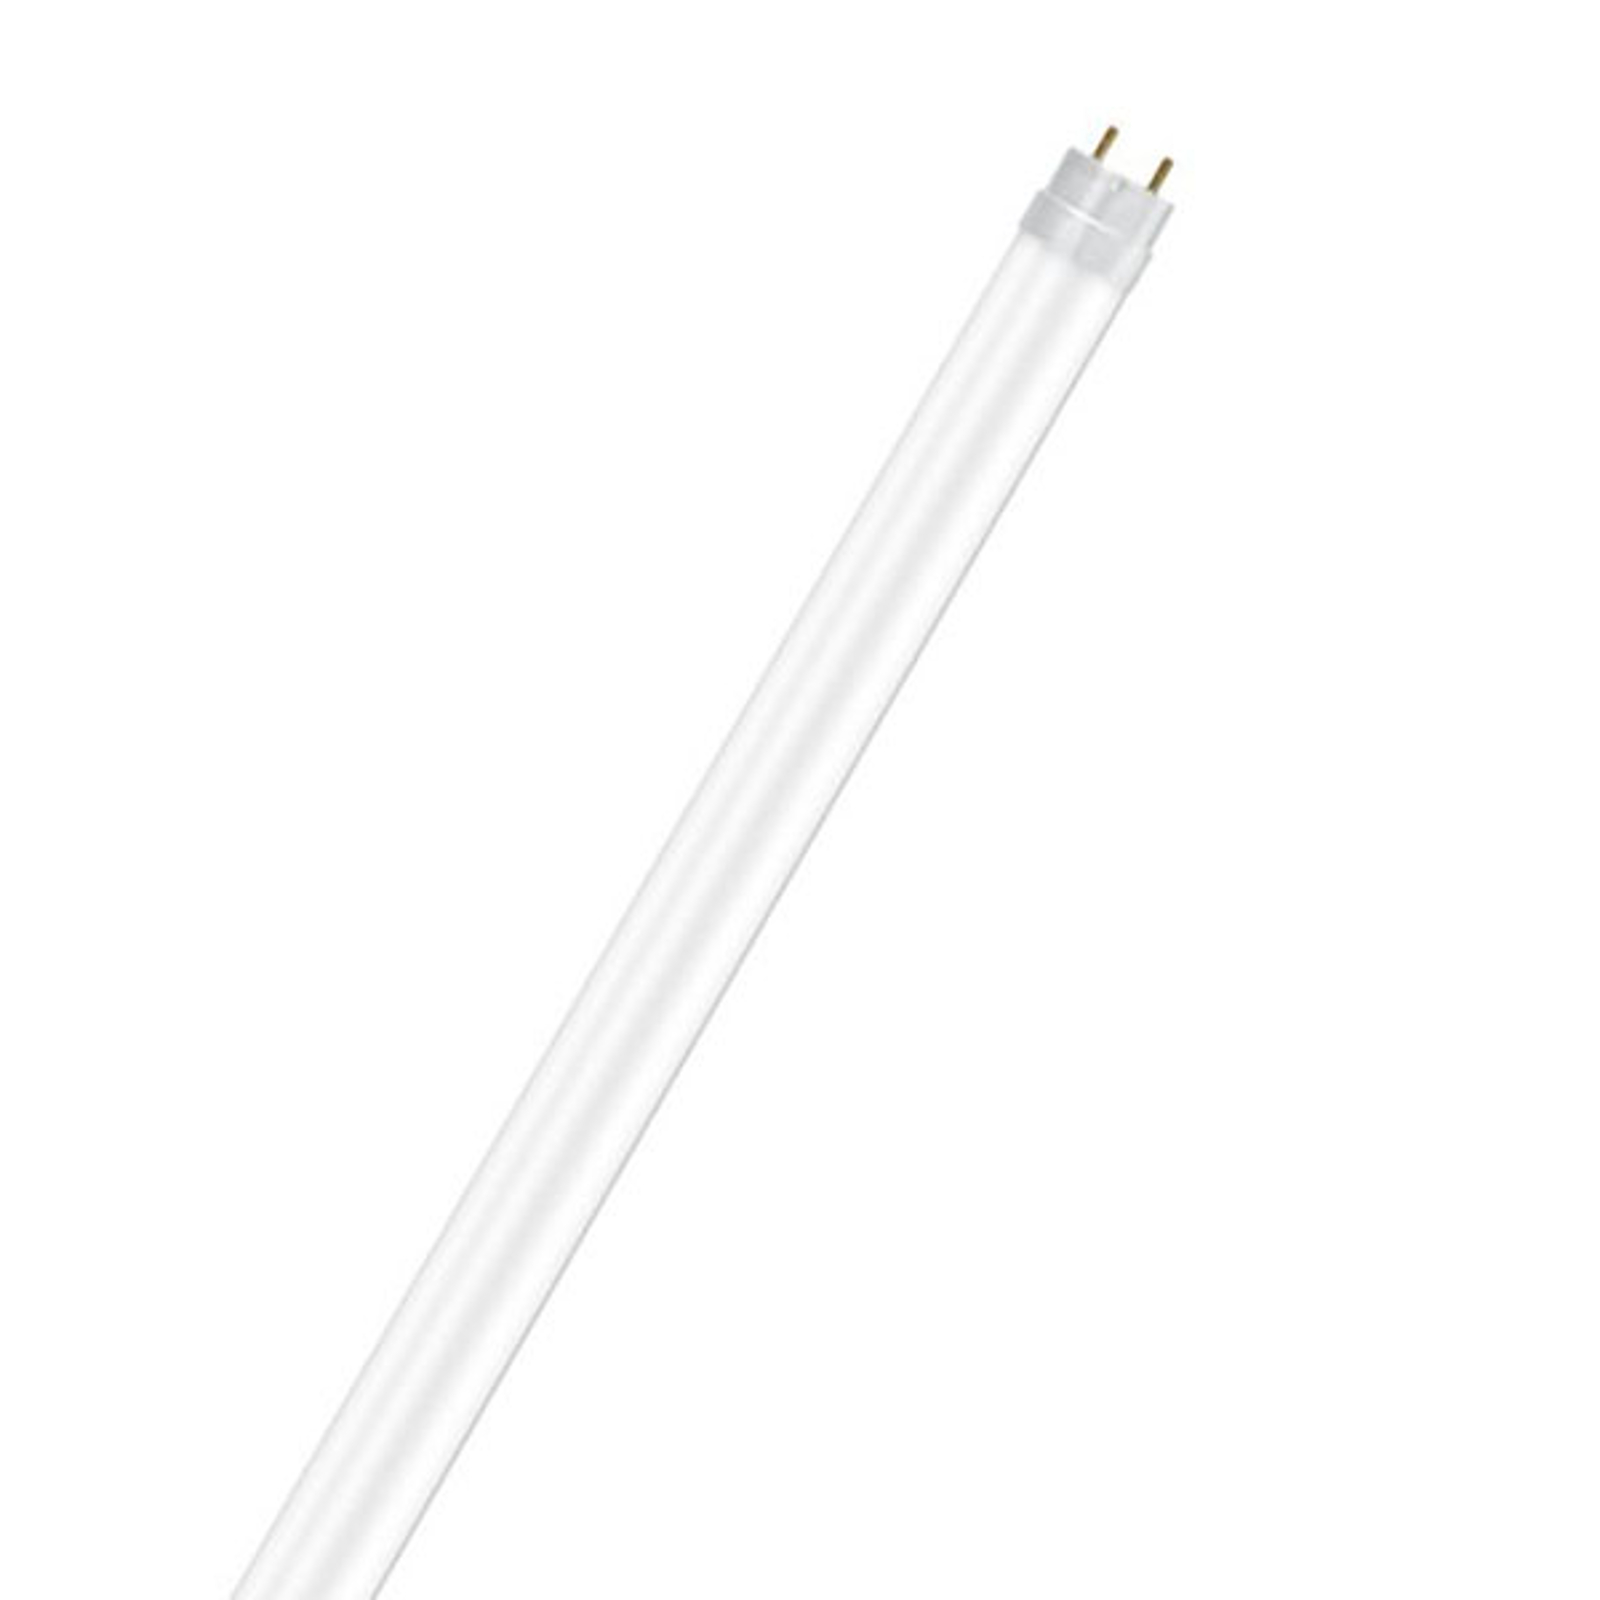 OSRAM LED-Röhre G13 60cm SubstiTUBE 7,3W 4.000K